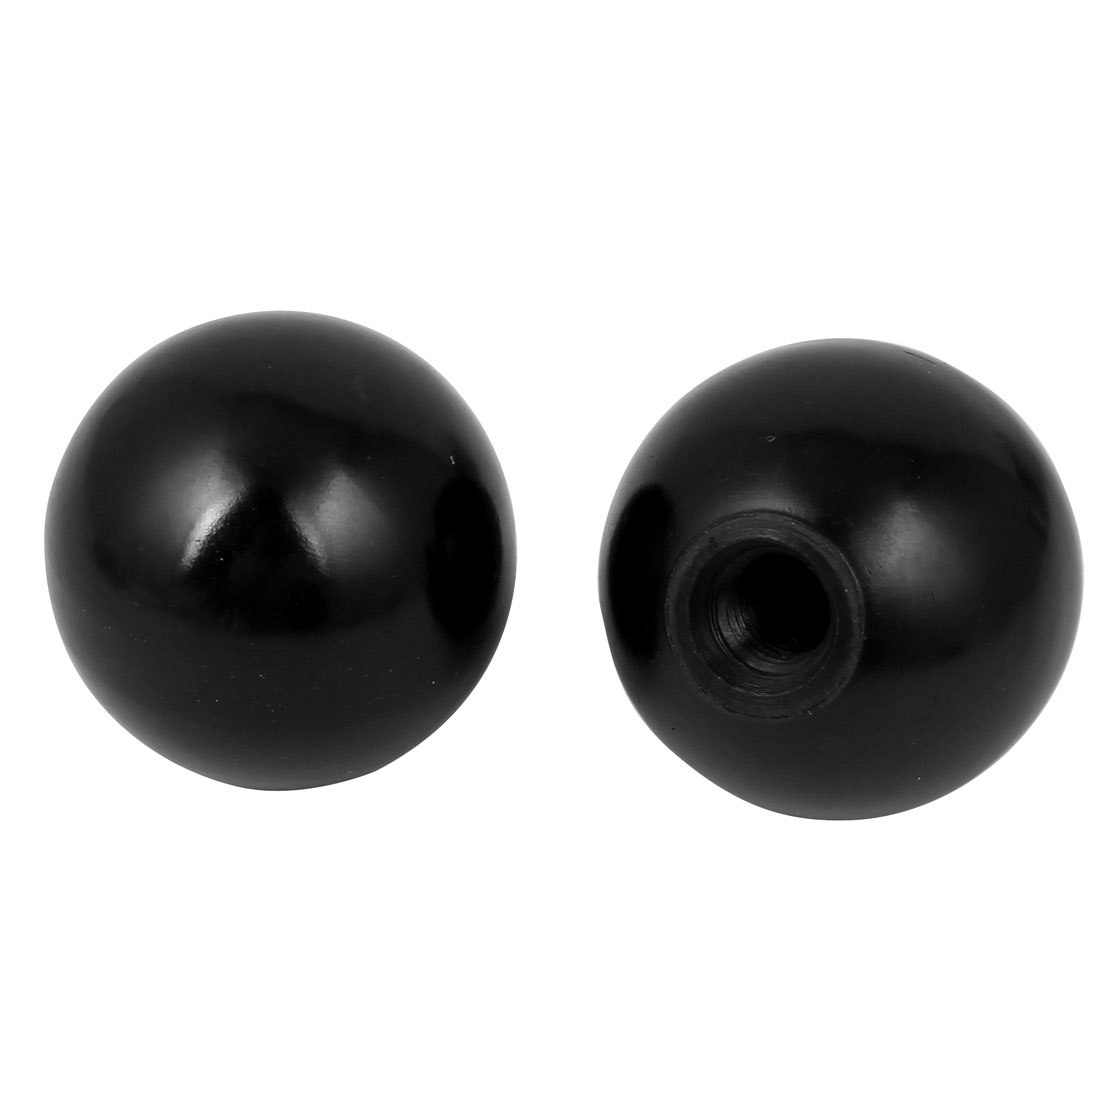 Black Plastic Round 50mm Diameter 12mm Threaded Ball Lever Knob 2 Pcs